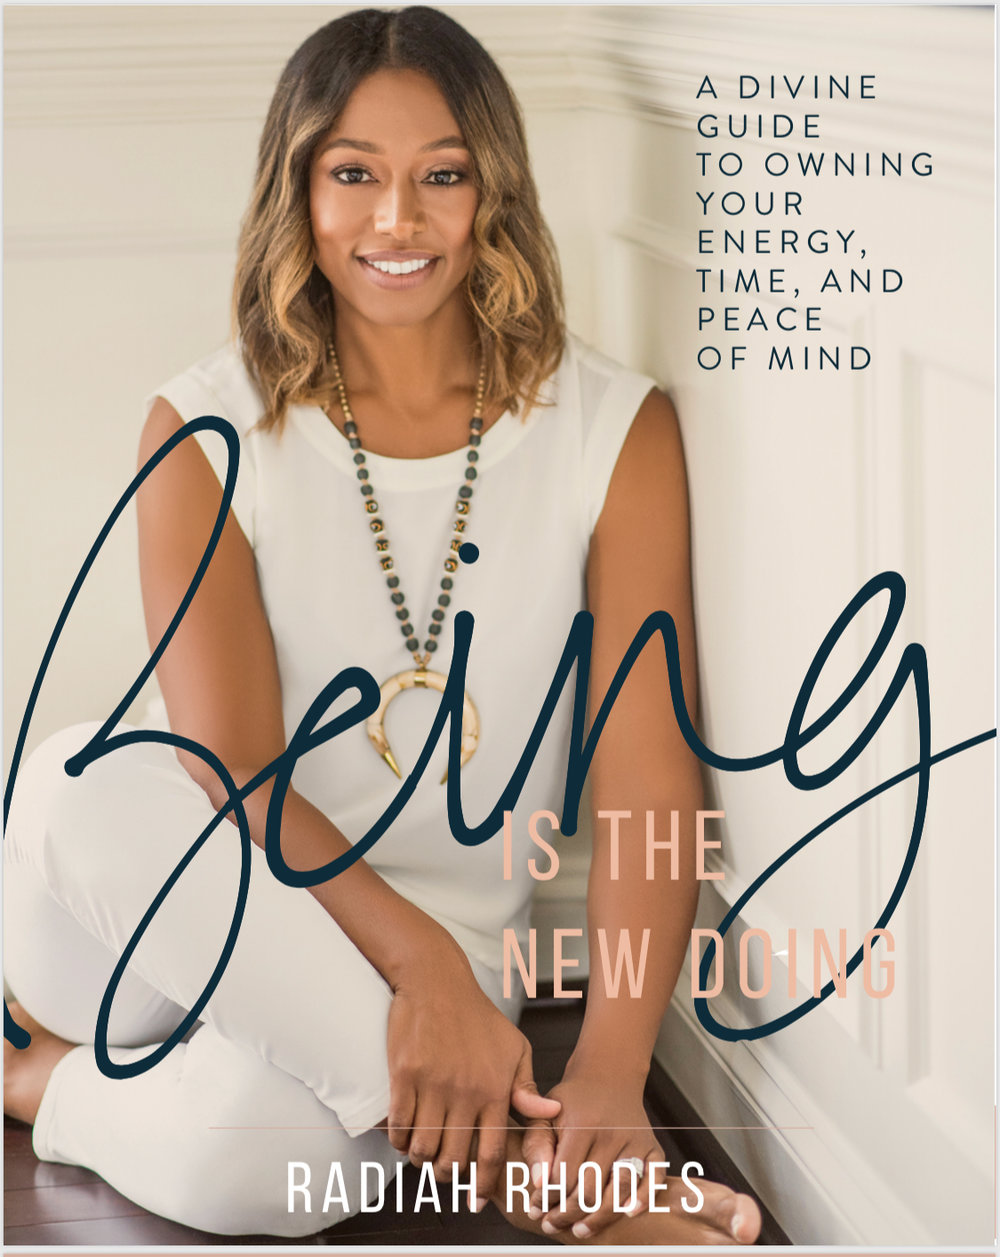 """BEING IS THE NEW DOING - Part memoir, part call-to-action and part inspiration, Rhodes, a well-being innovator, energy practitioner, and twenty year veteran of Fortune 100 corporate America, shares her personal journey toward well-being and outlines a simple and practical framework for how to become consciously aware of who you really are to create the life that's calling you. """"I spent years hoping, striving, and achieving without knowing why I was doing it,"""" Rhodes shares. """"I was unconsciously running from a past of struggle, believing it would be fixed by a future of accomplishments. When that didn't work I got stuck and the simple question""""Who are you?"""" set an answer in motion that changed everything."""""""